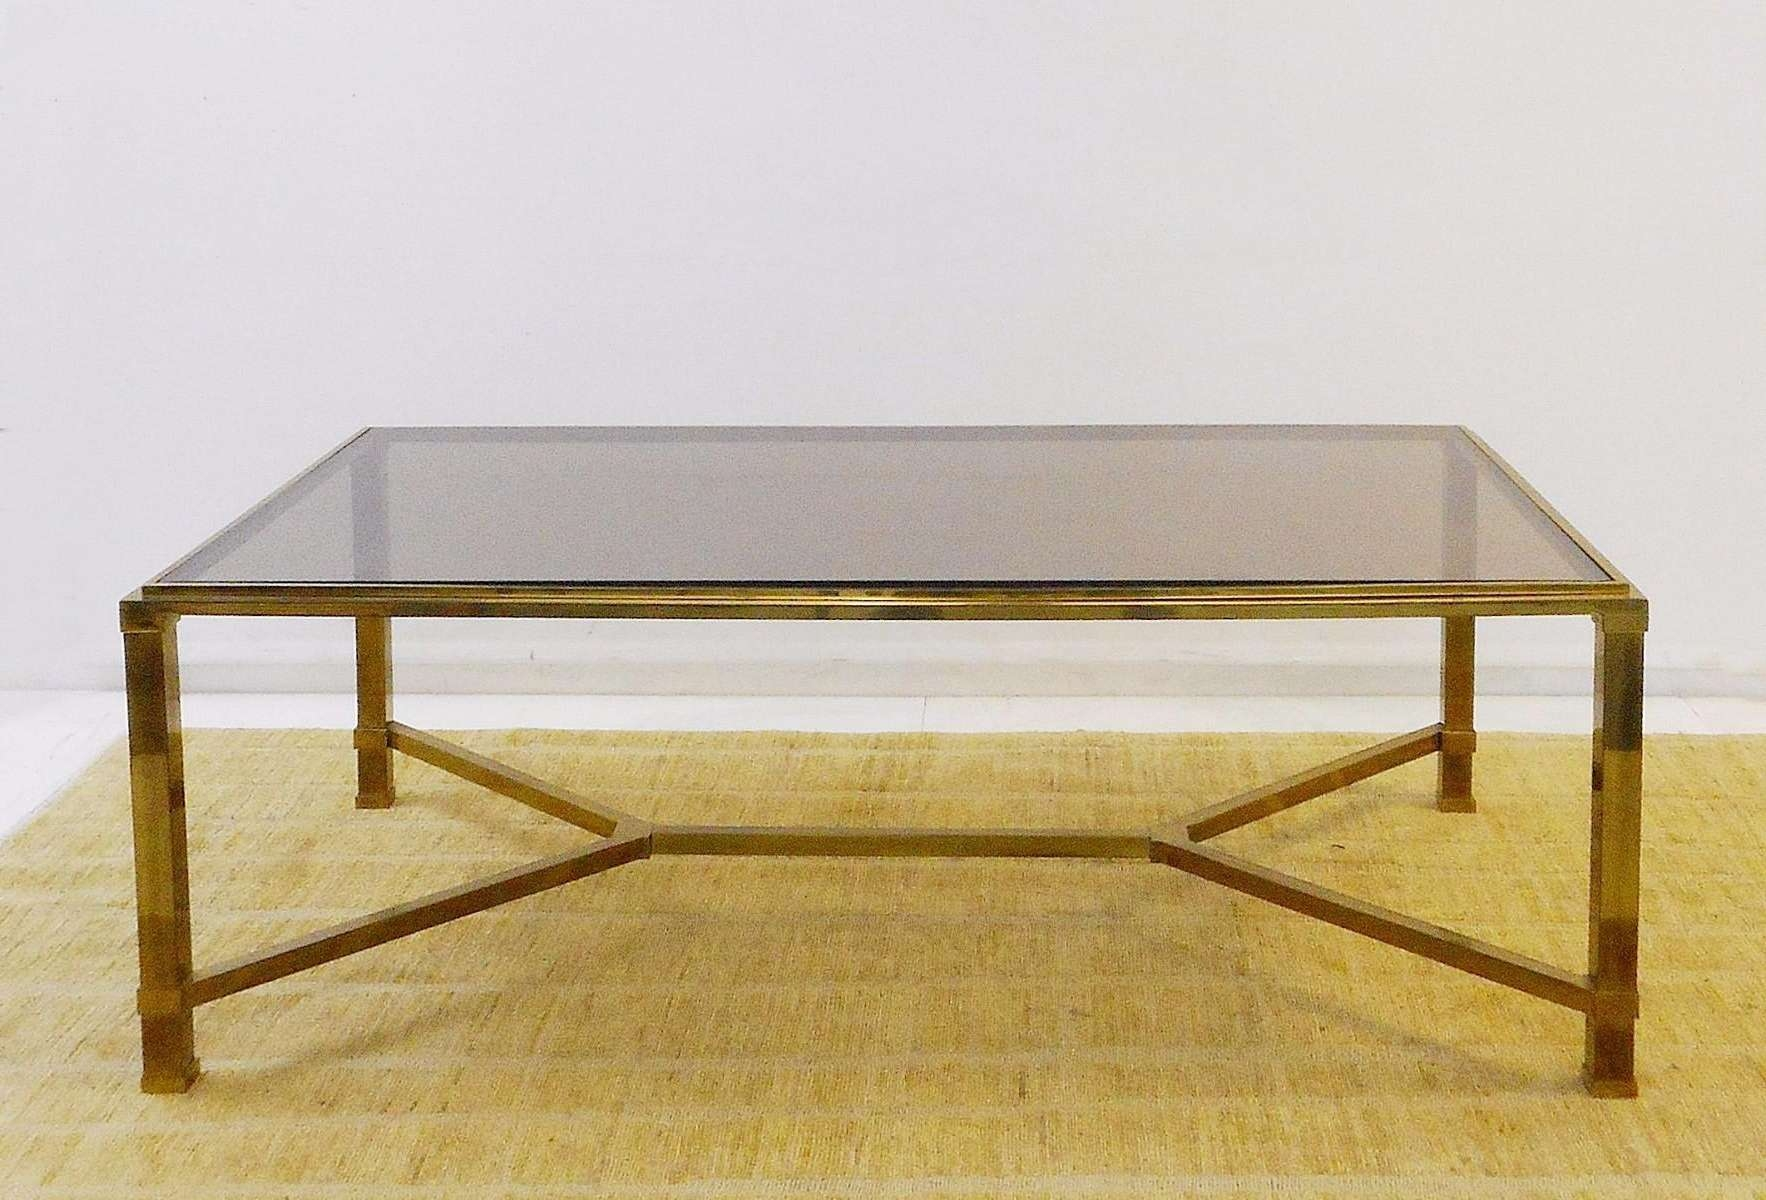 Fashionable Retro Smoked Glass Coffee Tables Regarding Vintage Brass & Smoked Glass Coffee Table For Sale At Pamono (View 5 of 20)